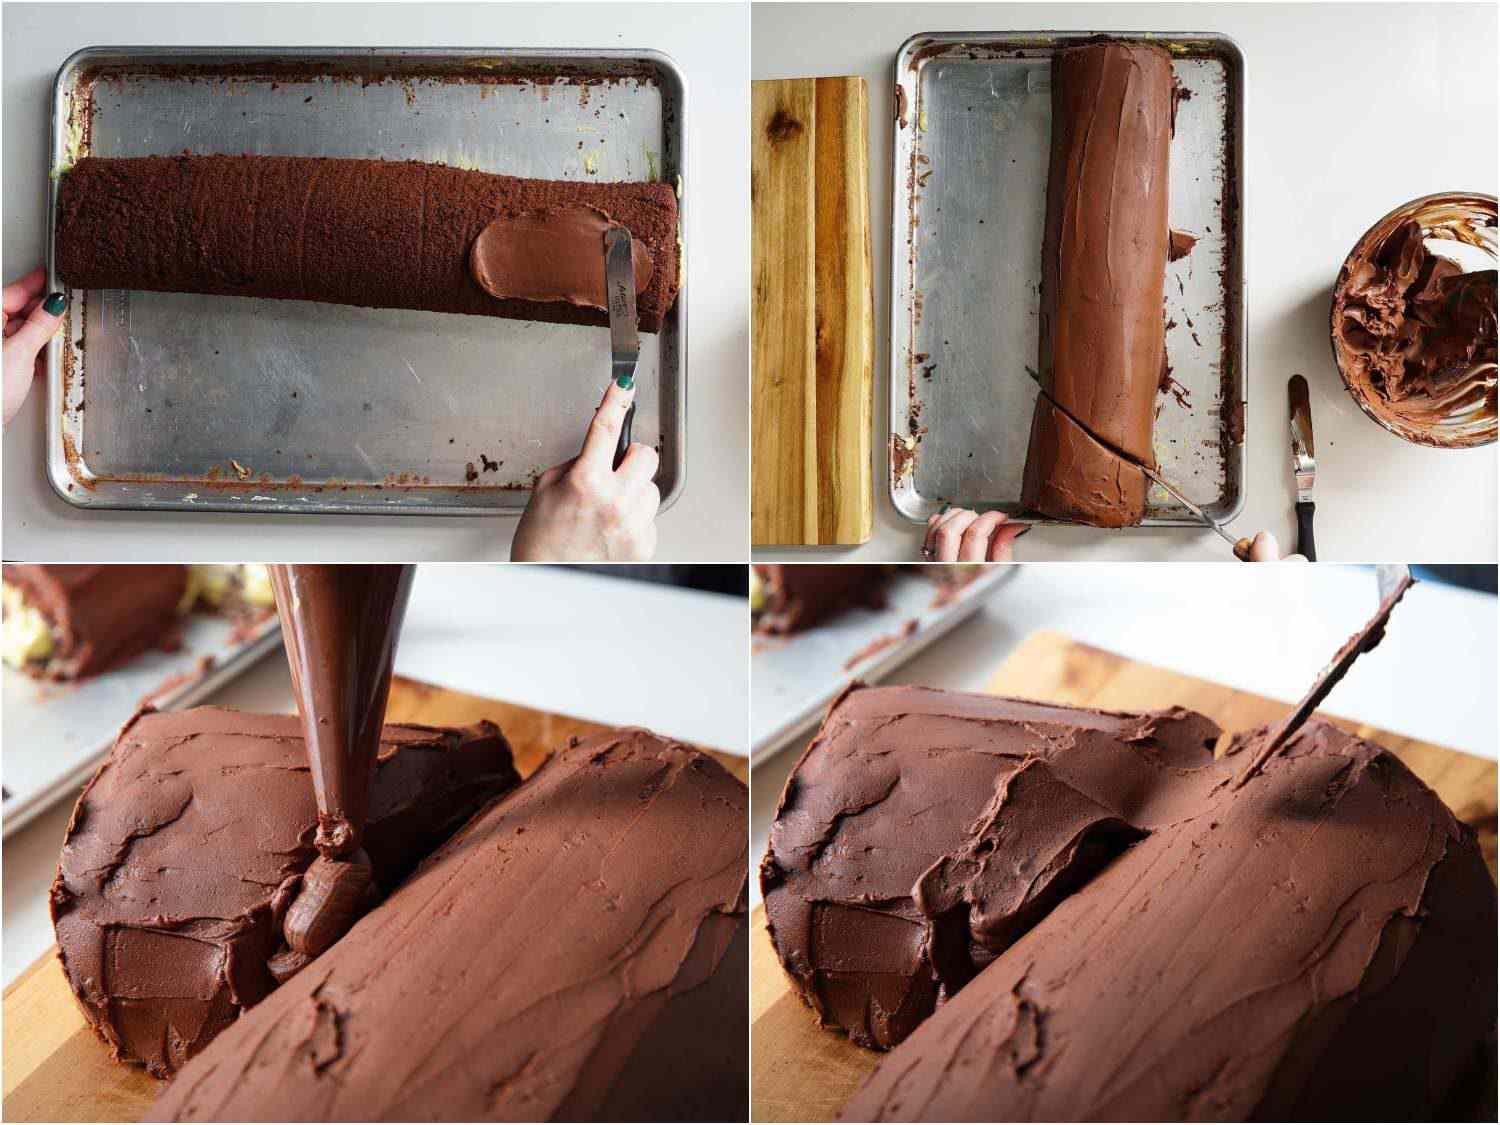 Frosting the yule log with ganache and assembling